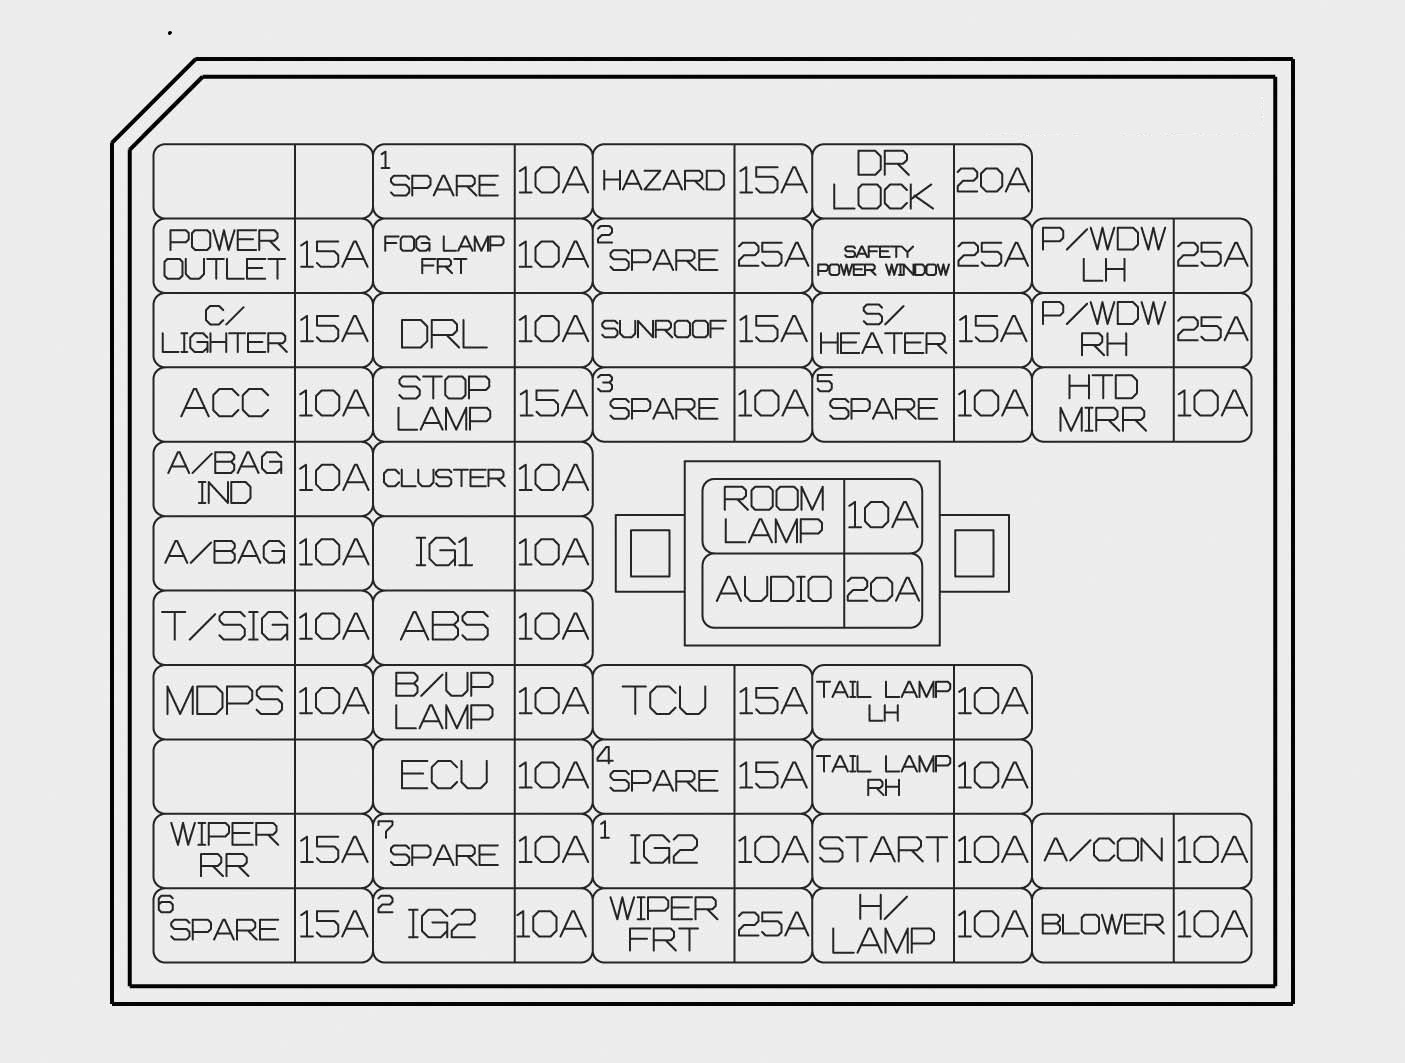 hight resolution of hyundai sonata 2015 fuse box diagram